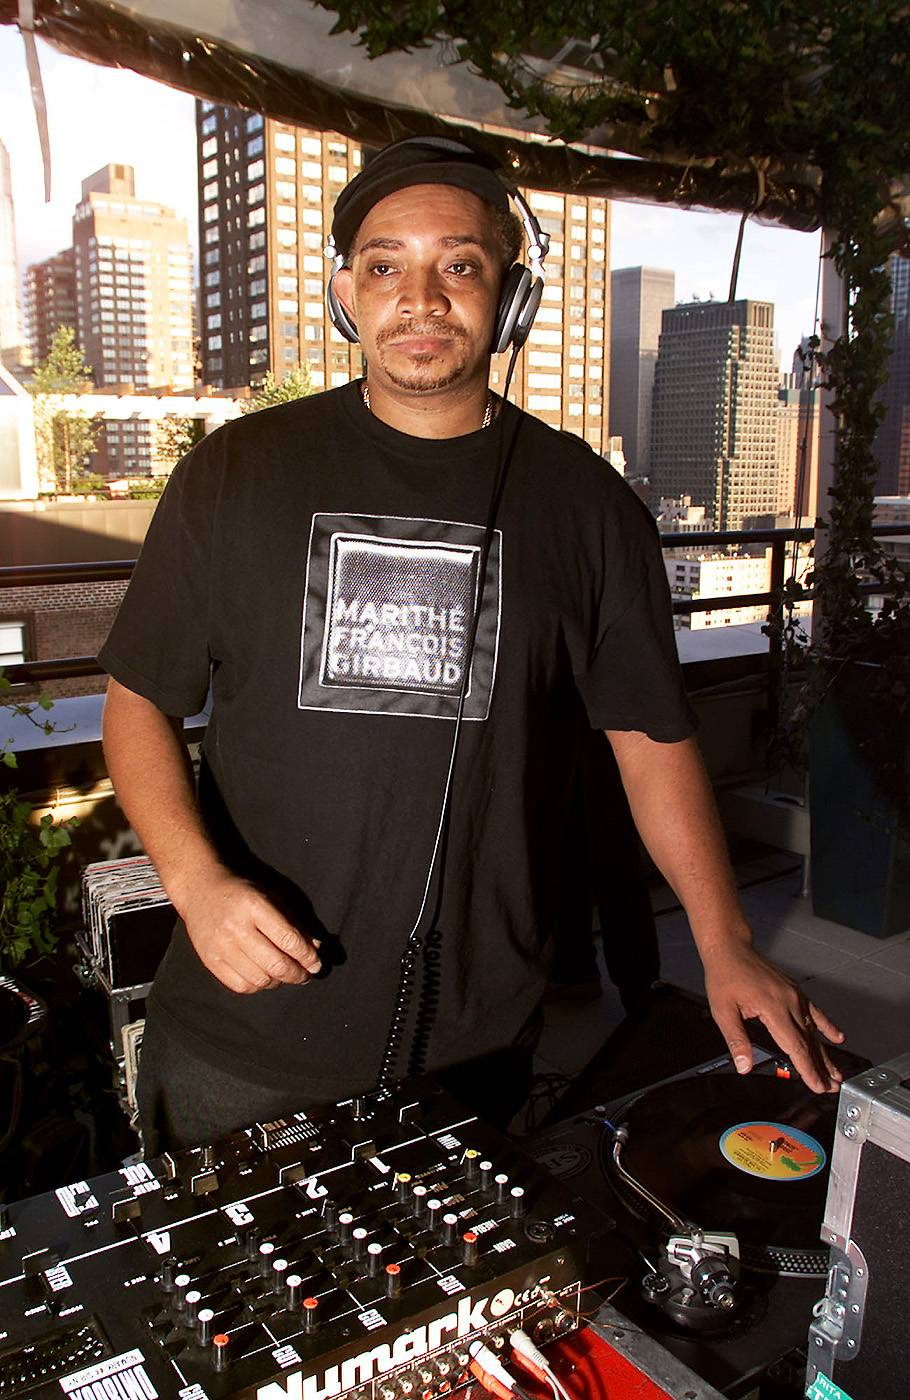 6. Kool DJ Red Alert - A rap icon since the '80s, Red Alert's was hip hop's hottest tastemaker during his legendary tenure on New York's KISS-FM. On the airwaves and as head of Red Alert Productions ? the once powerful management company that guided the careers of many golden-era rap greats?Uncle Red introduced the world to countless rap titans. In particular, he was a key backer of both Boogie Down Productions and the Native Tongues crew (A Tribe Called Quest, De La Soul, Jungle Brothers, Black Sheep), both pioneers in their own right.   (Photo: Scott Gries/ImageDirect)